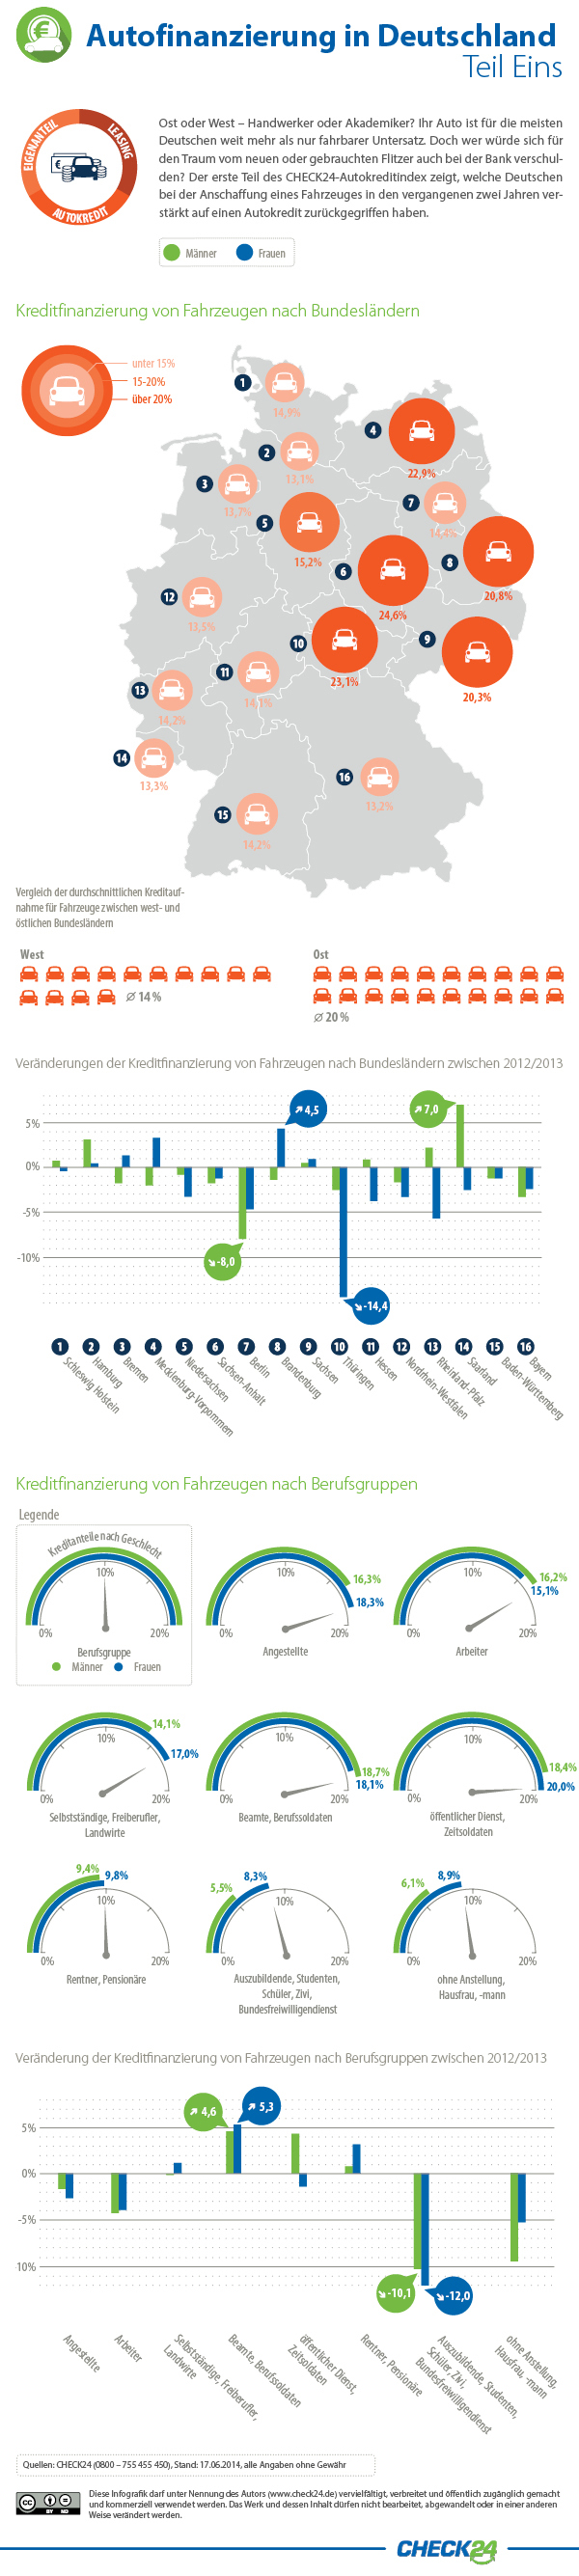 infografik check24 autofinanzierungsindex 2014 check24. Black Bedroom Furniture Sets. Home Design Ideas